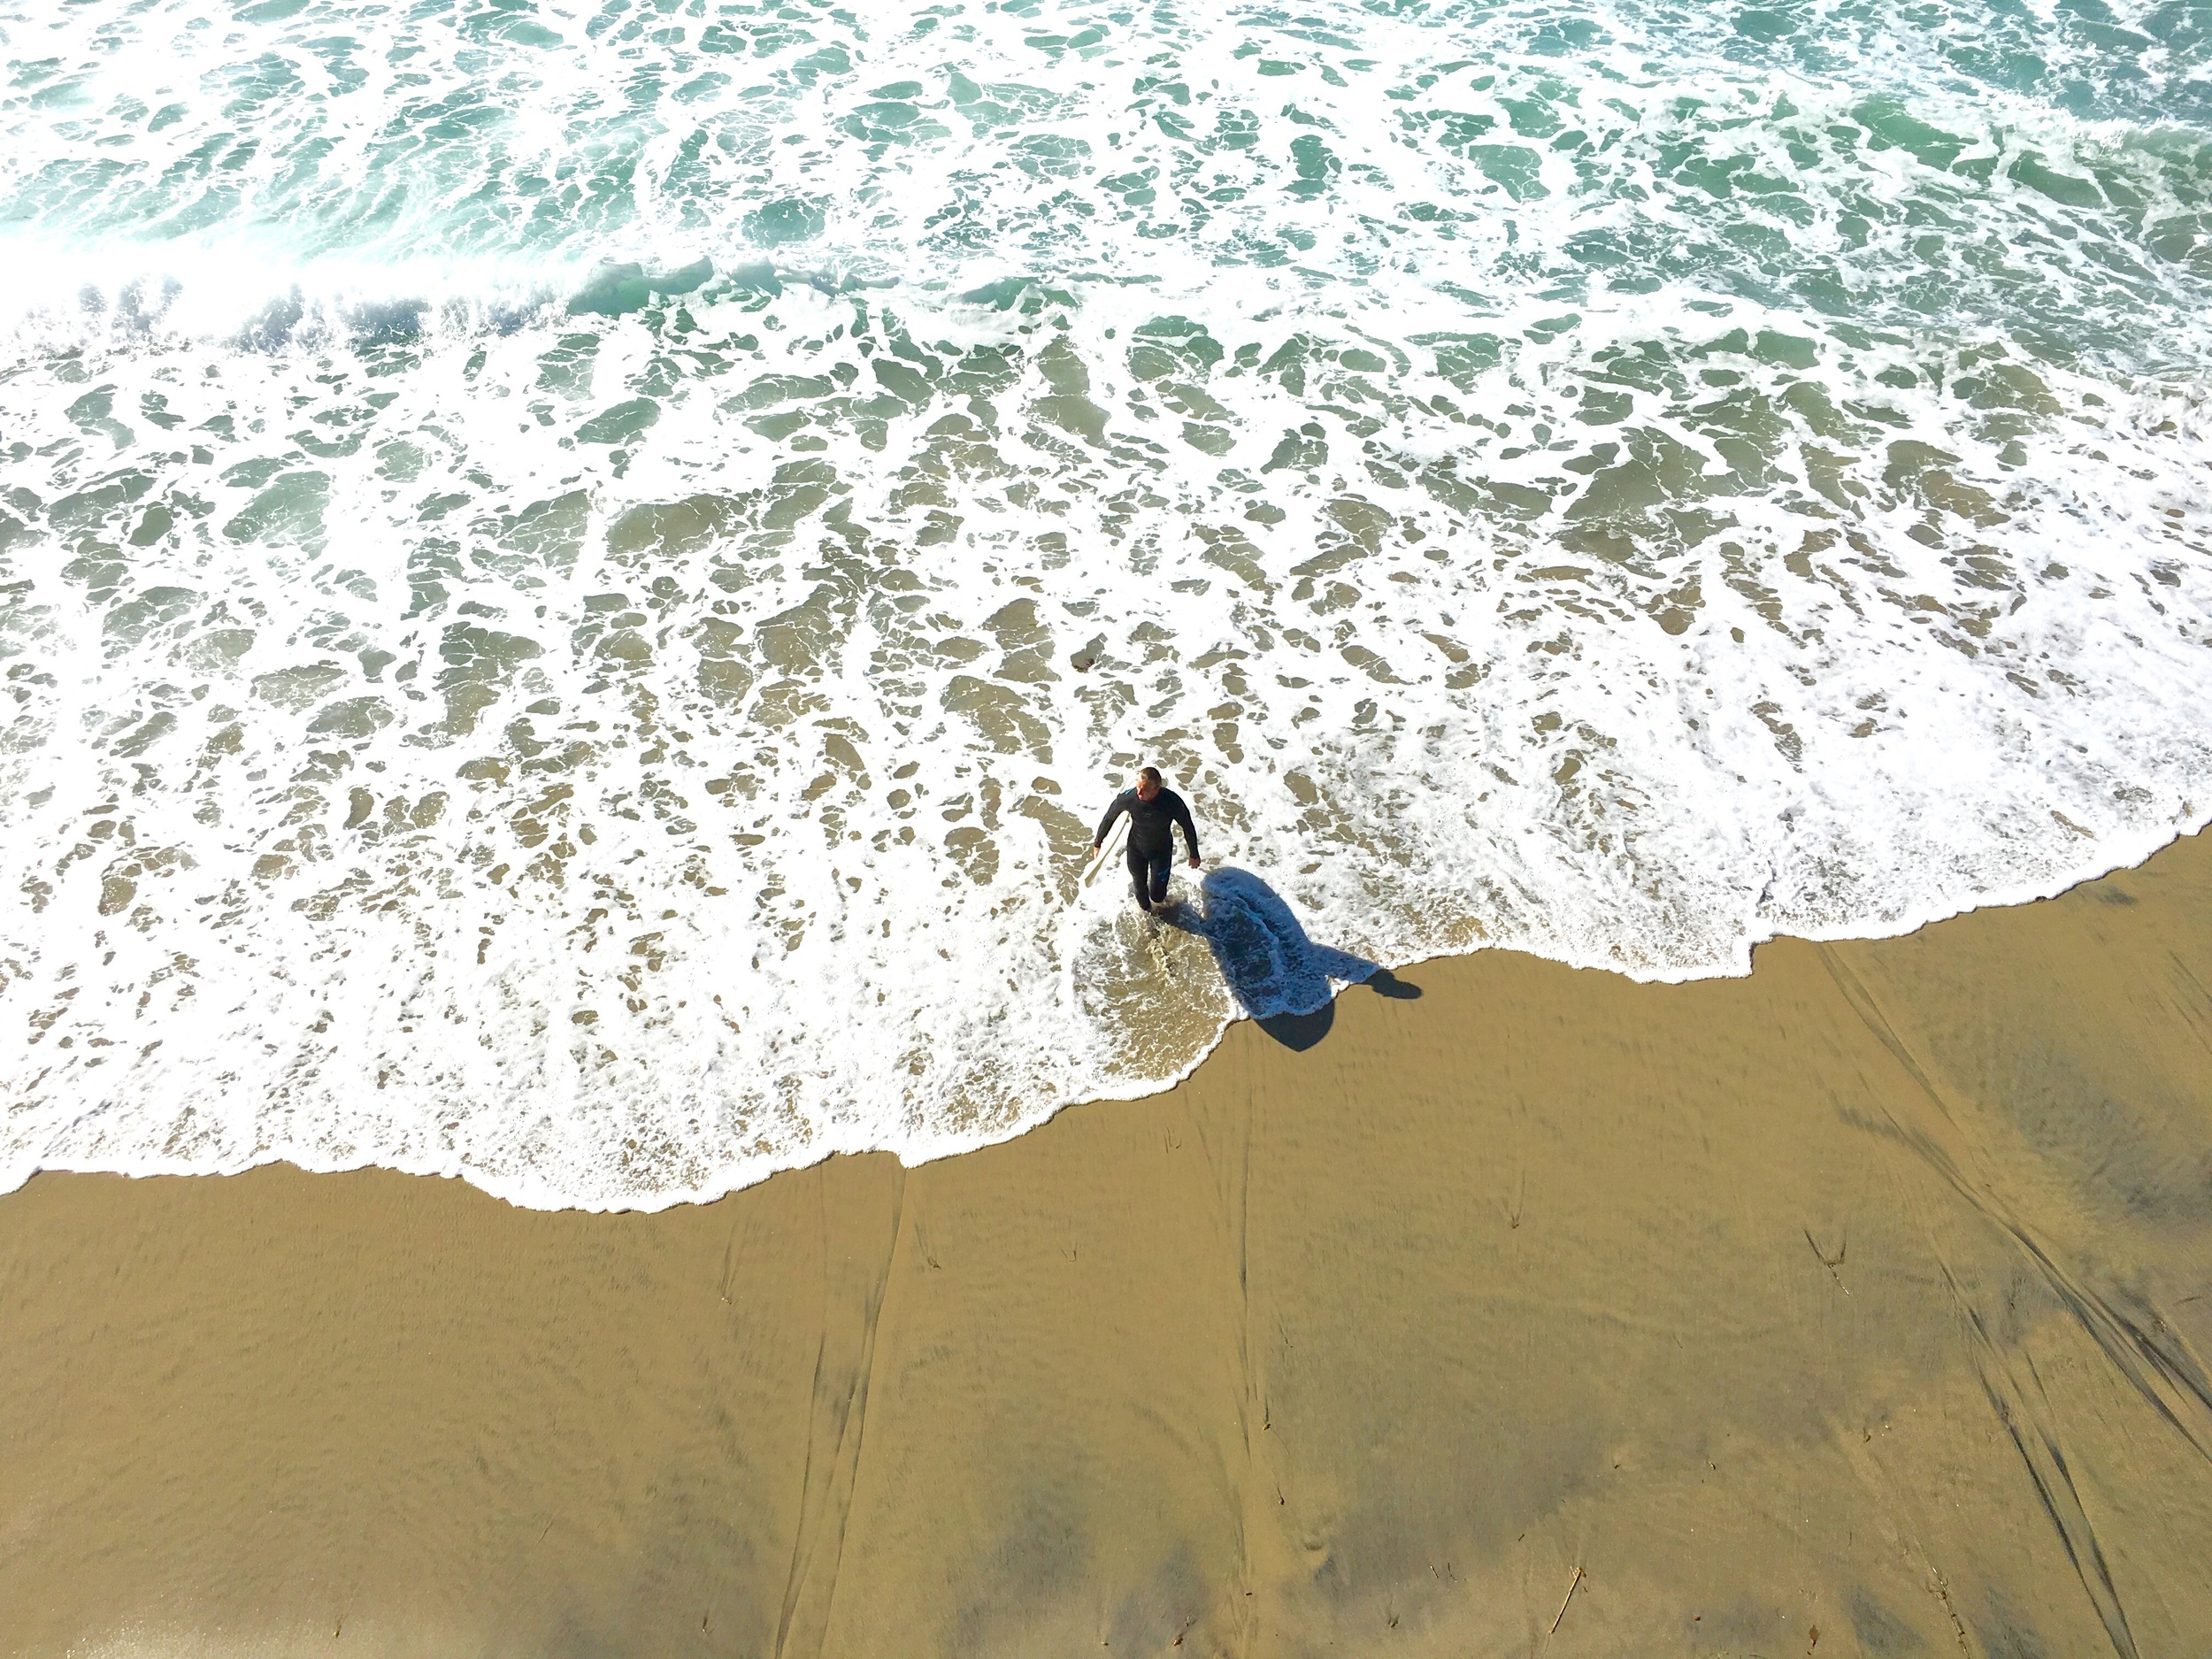 A surfer getting ready to take the plunge! Image©gunjanvirk, camera iPhone 6s Plus